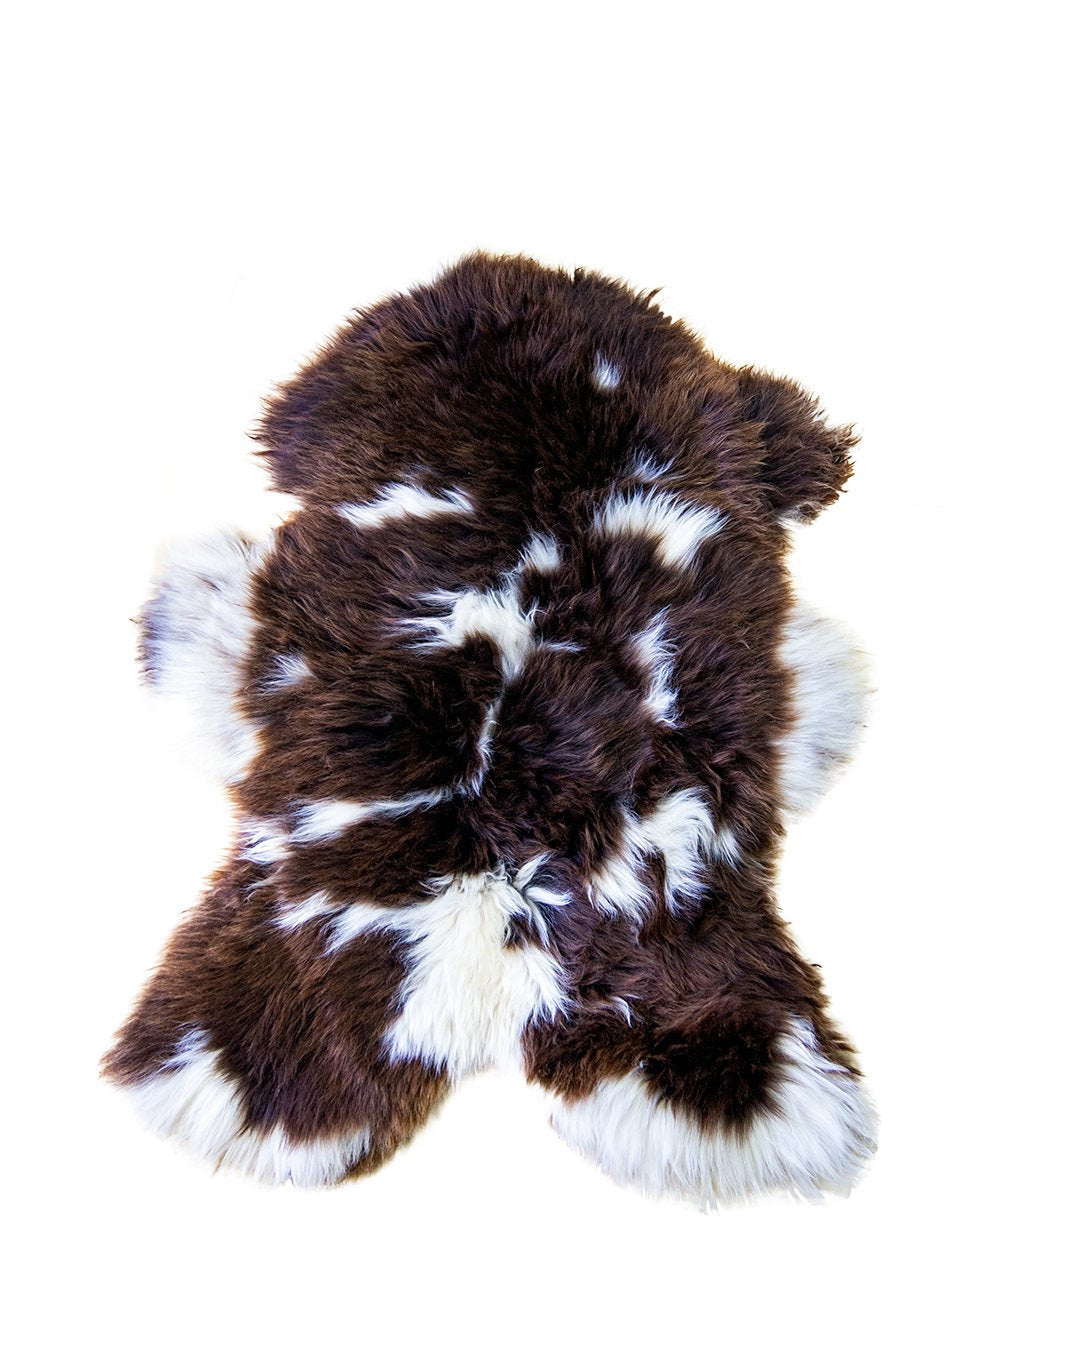 Natural Jacob Rare Breed Sheepskin Rug | HUGE 120 cm